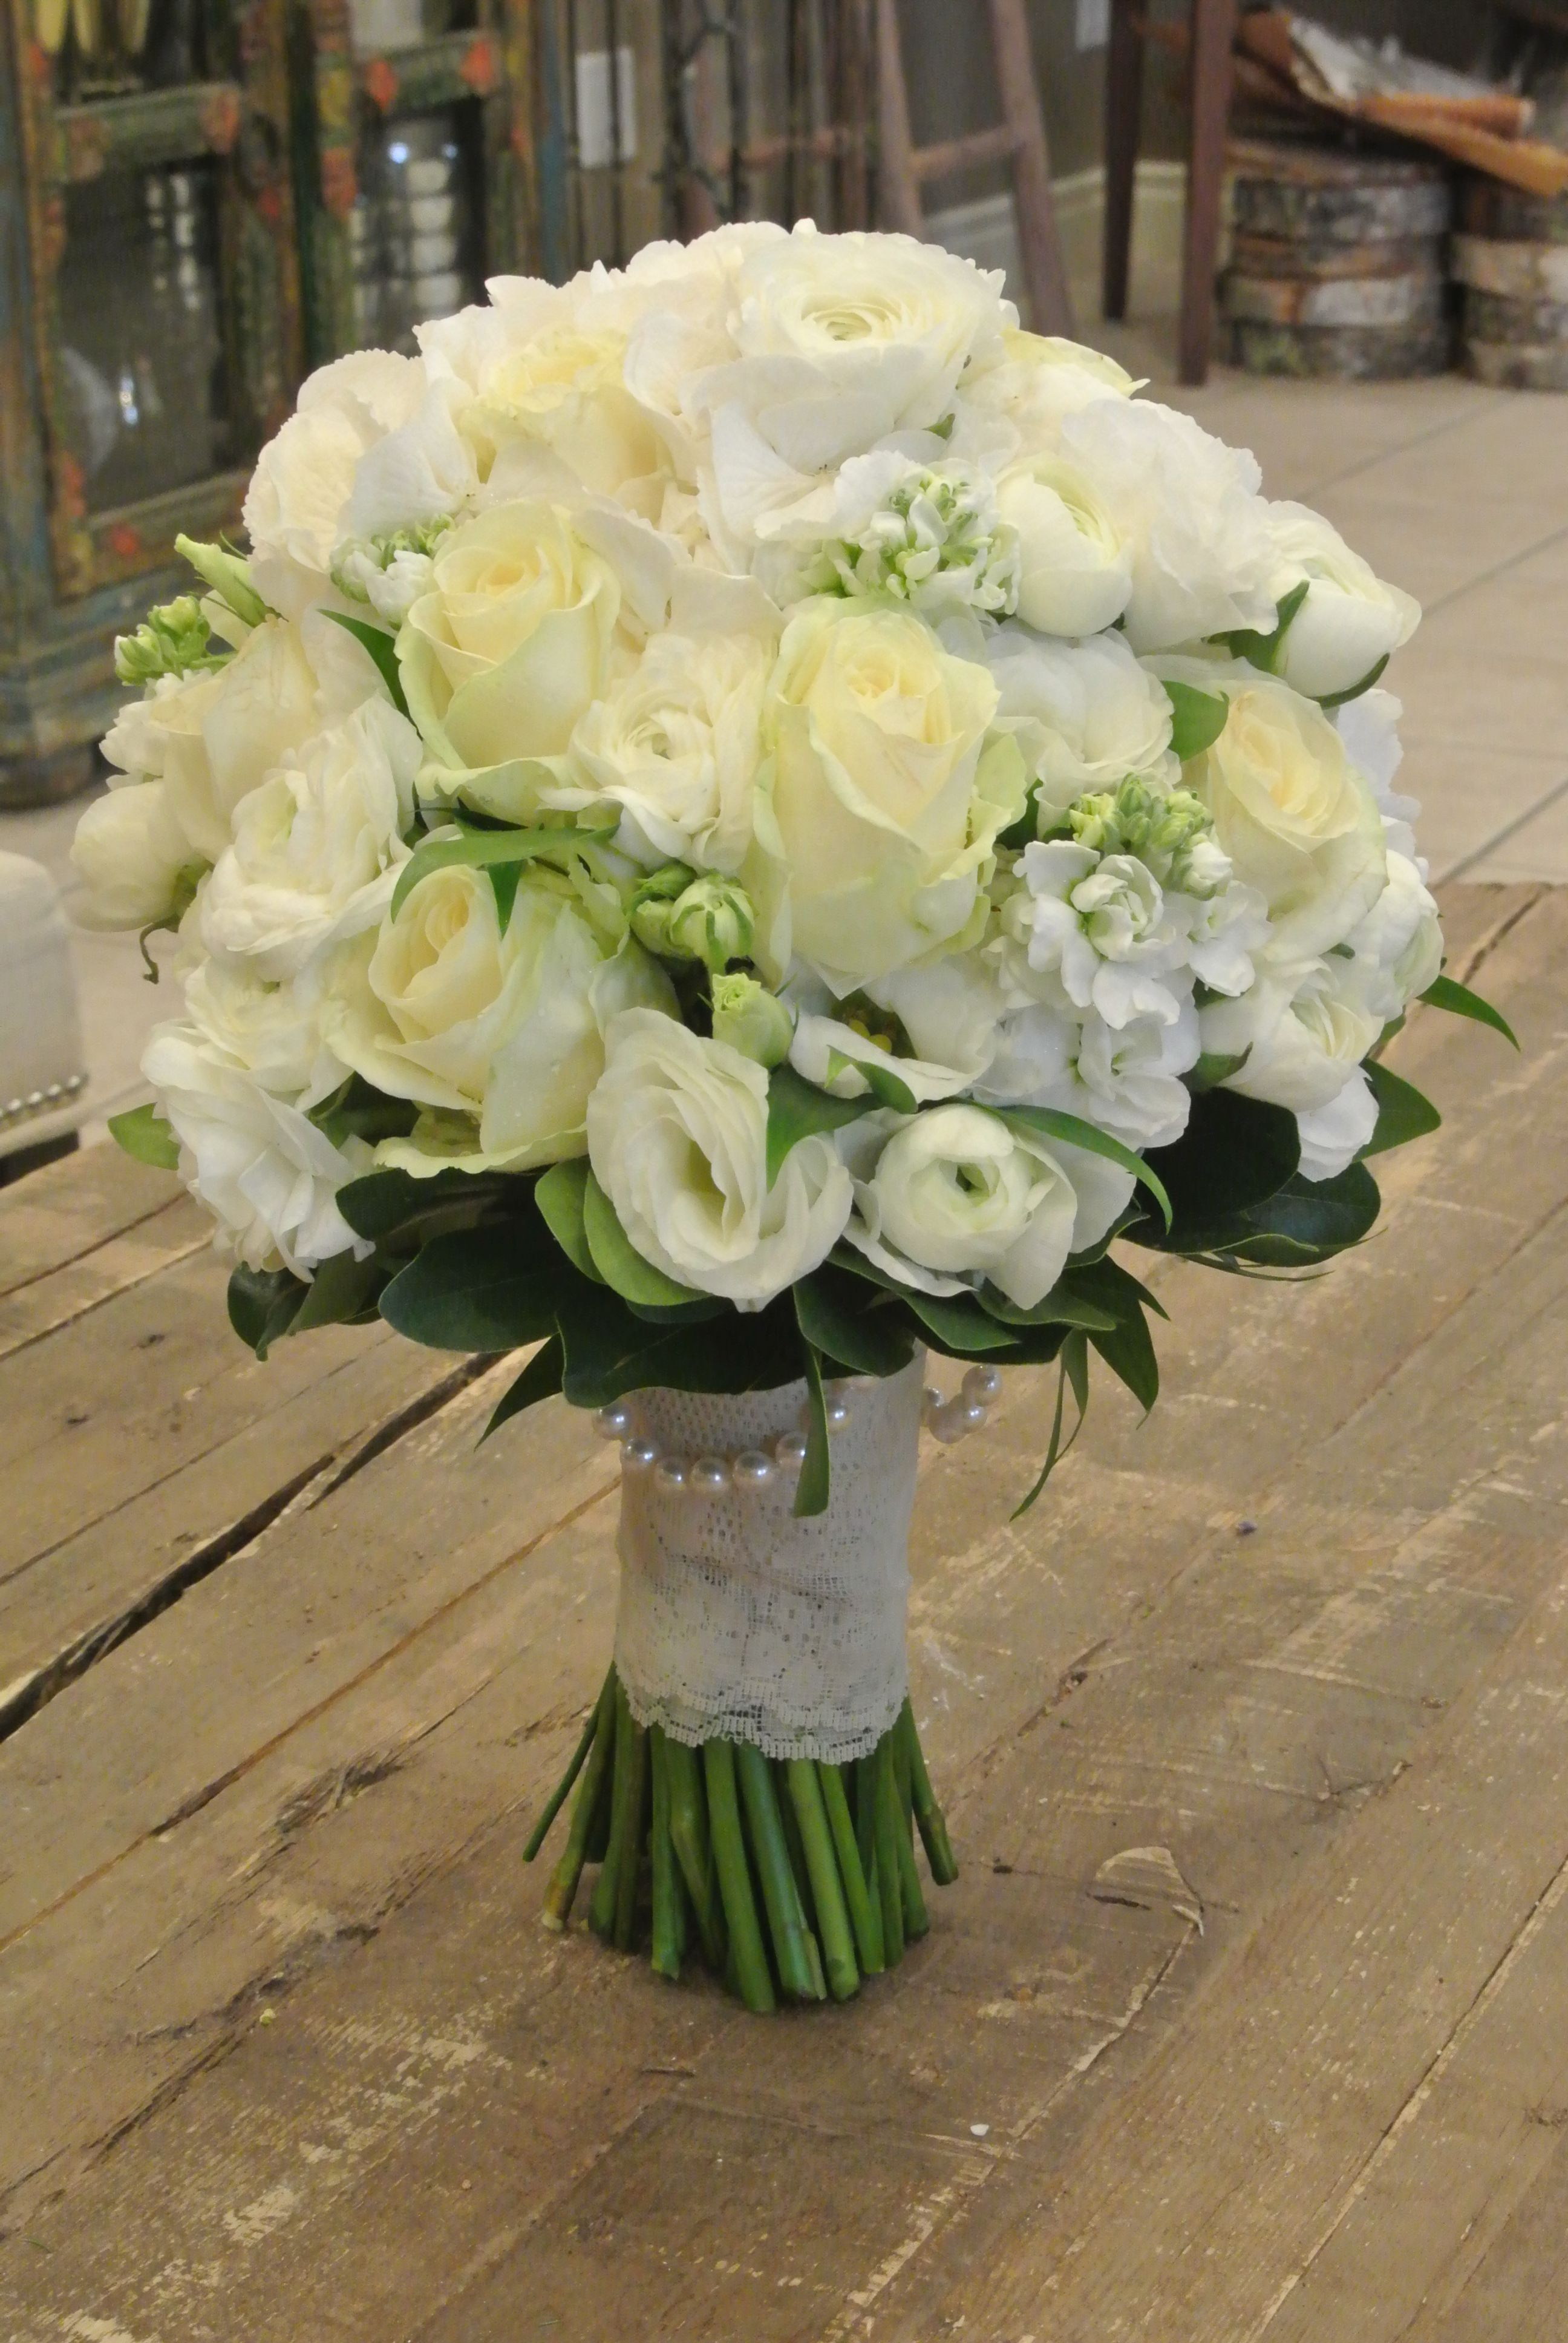 Bridal Bouquet With Roses Ranunculus Lisianthus Stocks And Hydrangea Designed By Forget Me Not Flow White Wedding Bouquets Wedding Bouquets Wedding Flowers